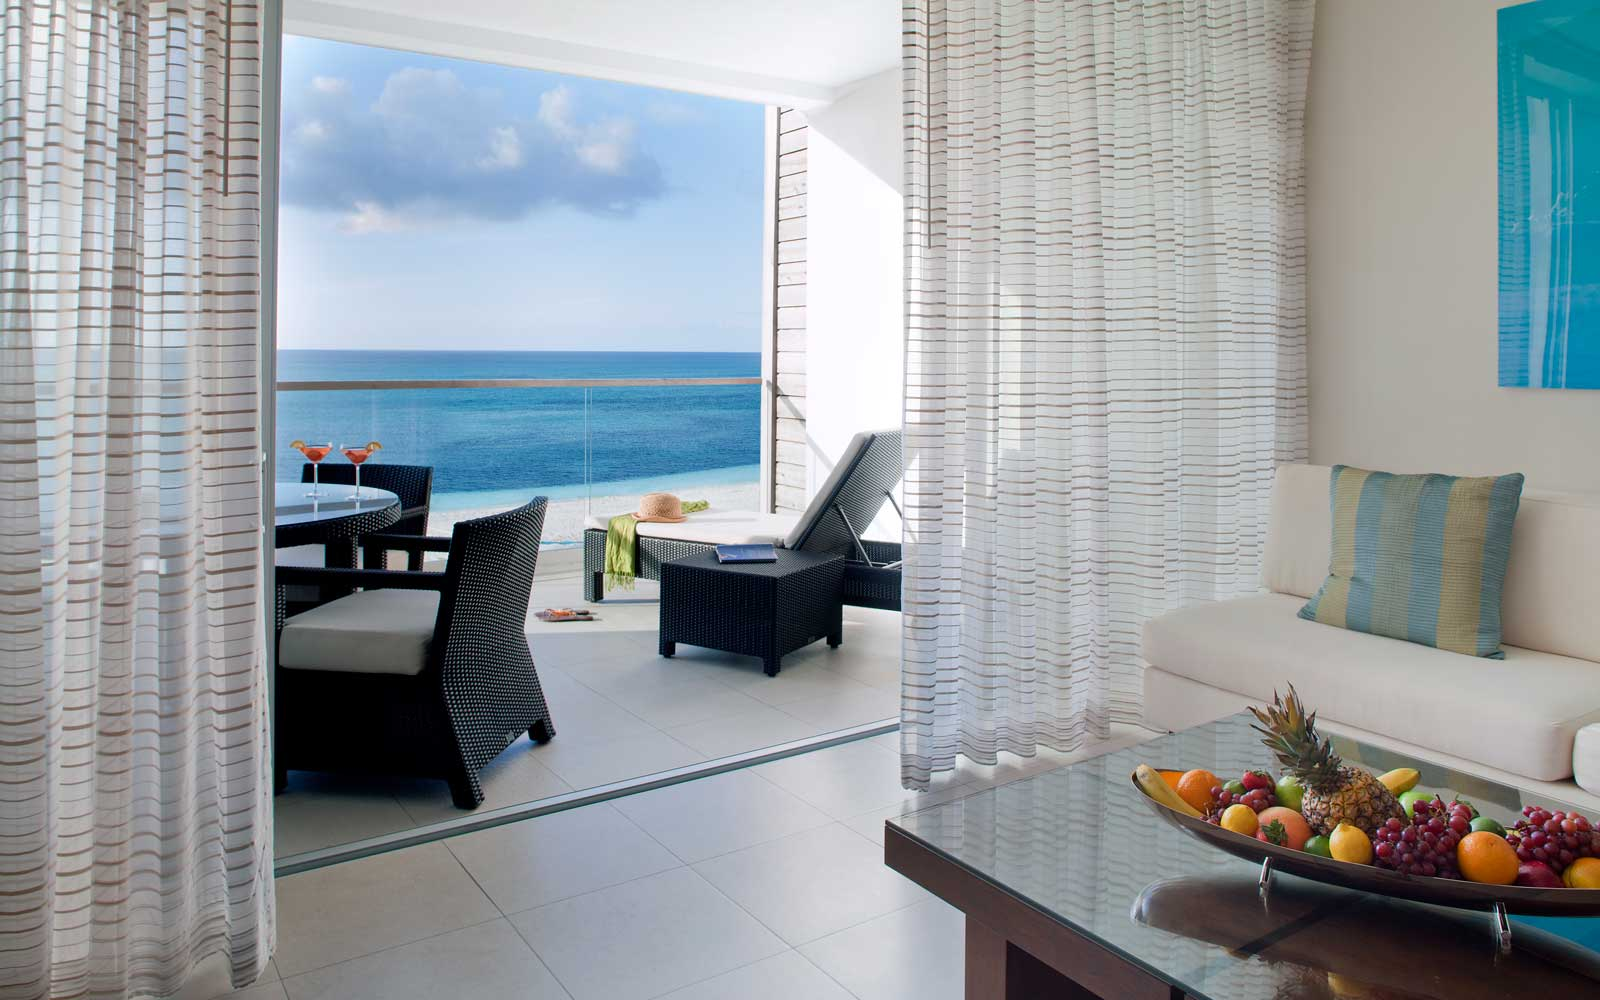 Get Three Nights for The Price of Two at The Gansevoort Turks + Caicos